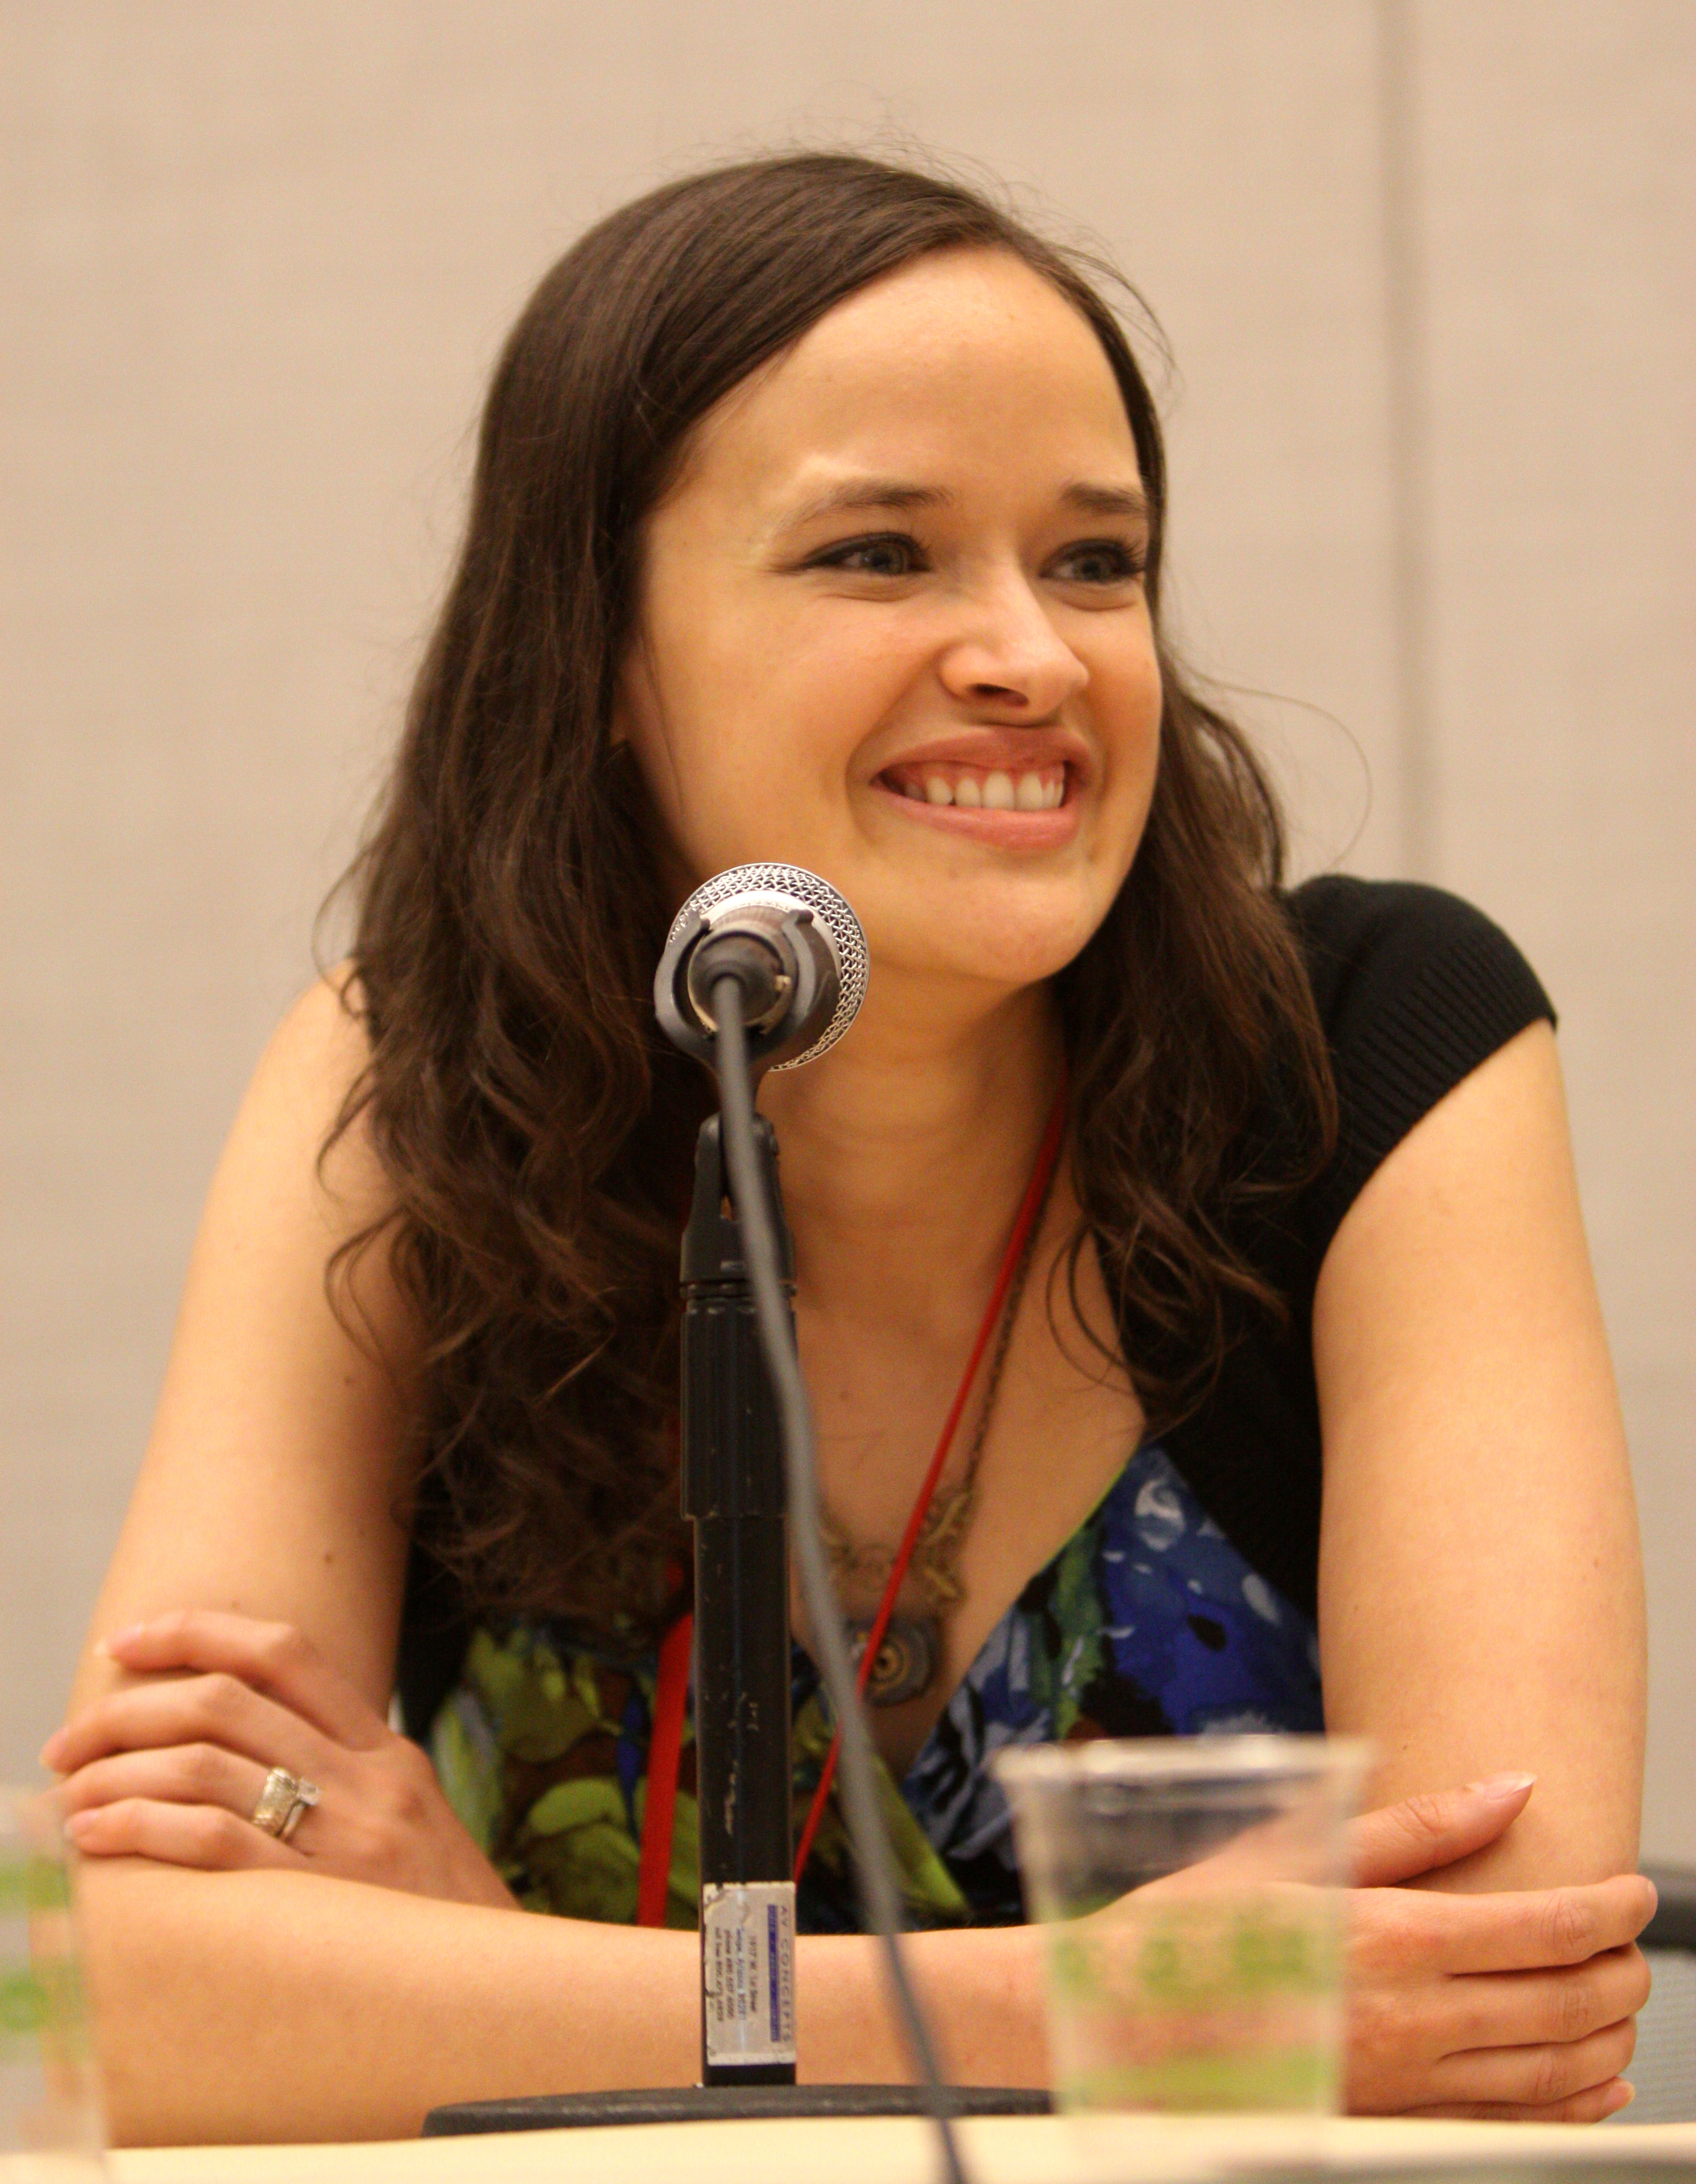 Brina Palencia Wikipedia Her name comes from a video game hiro mashima was playing while creating her character. brina palencia wikipedia